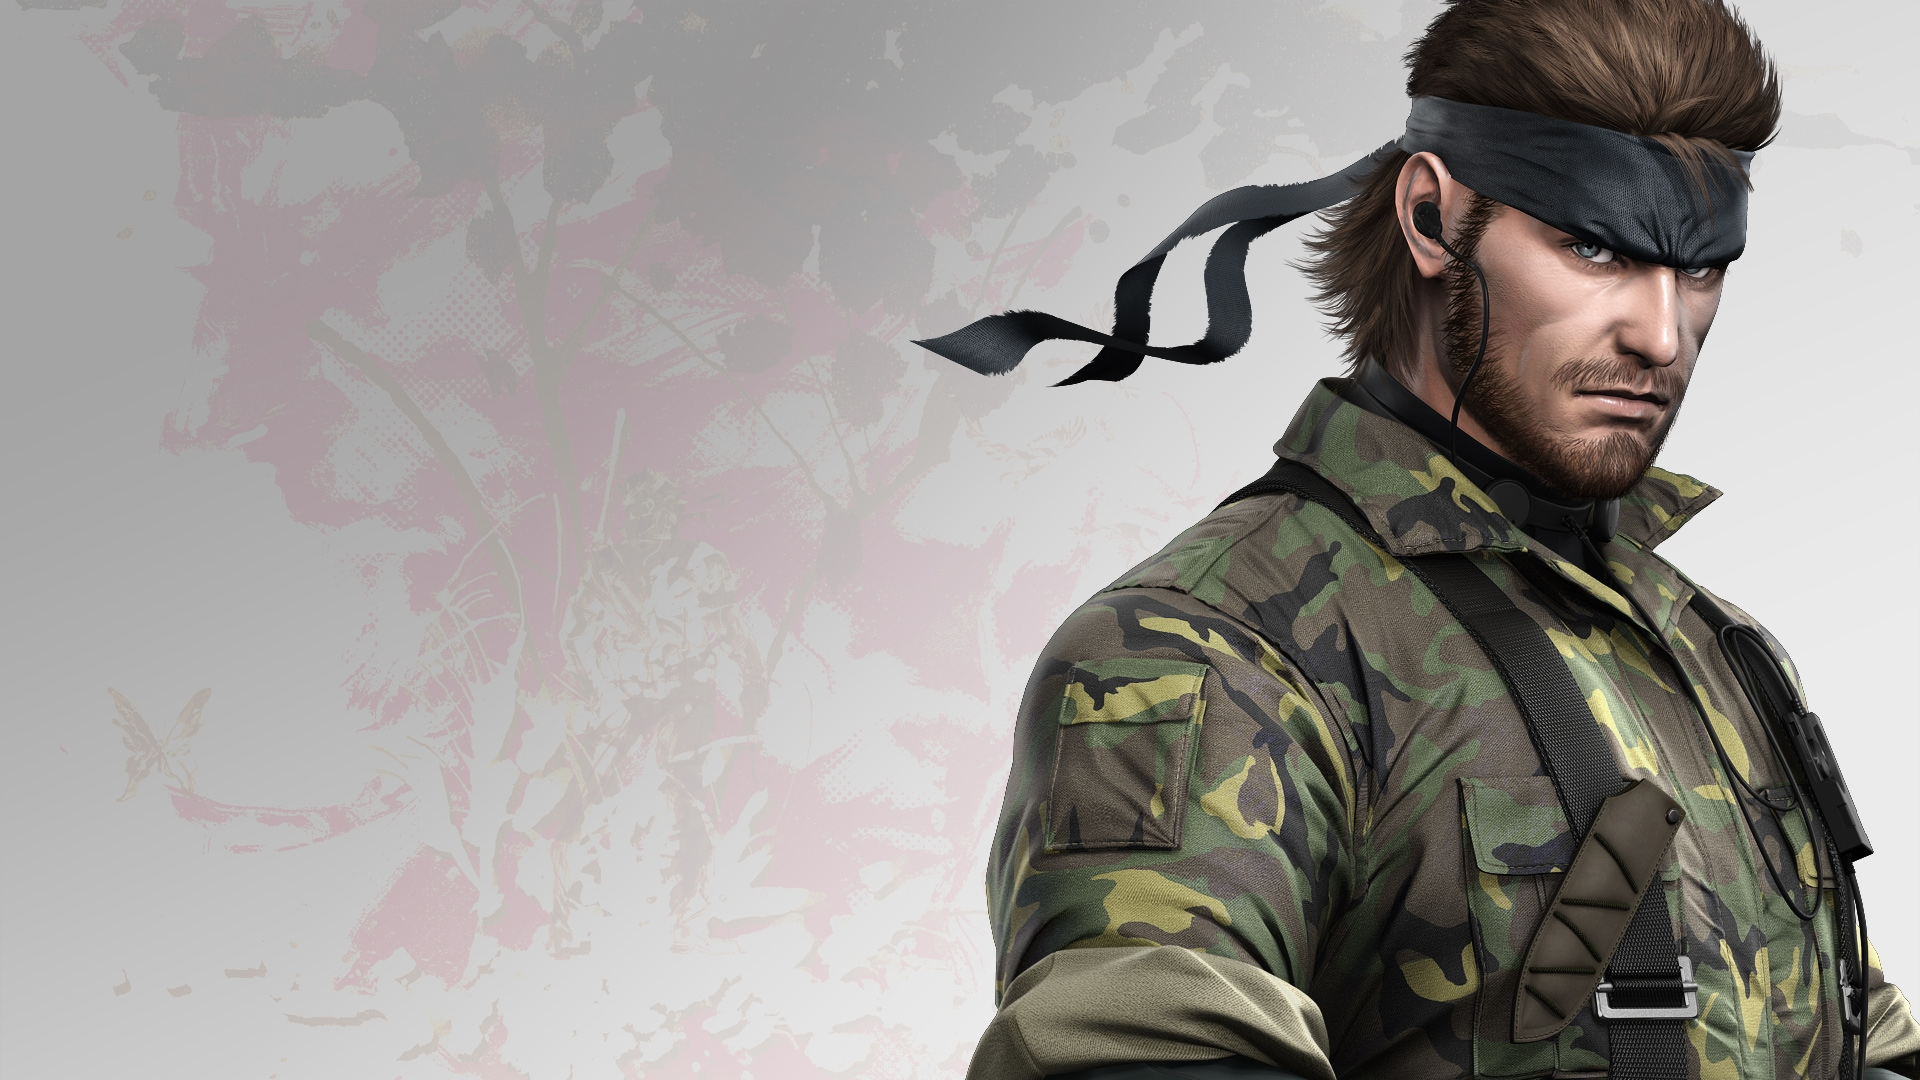 Metal gear solid snake high definition wallpapers hd wallpapers metal gear solid snake hd wallpaper voltagebd Choice Image